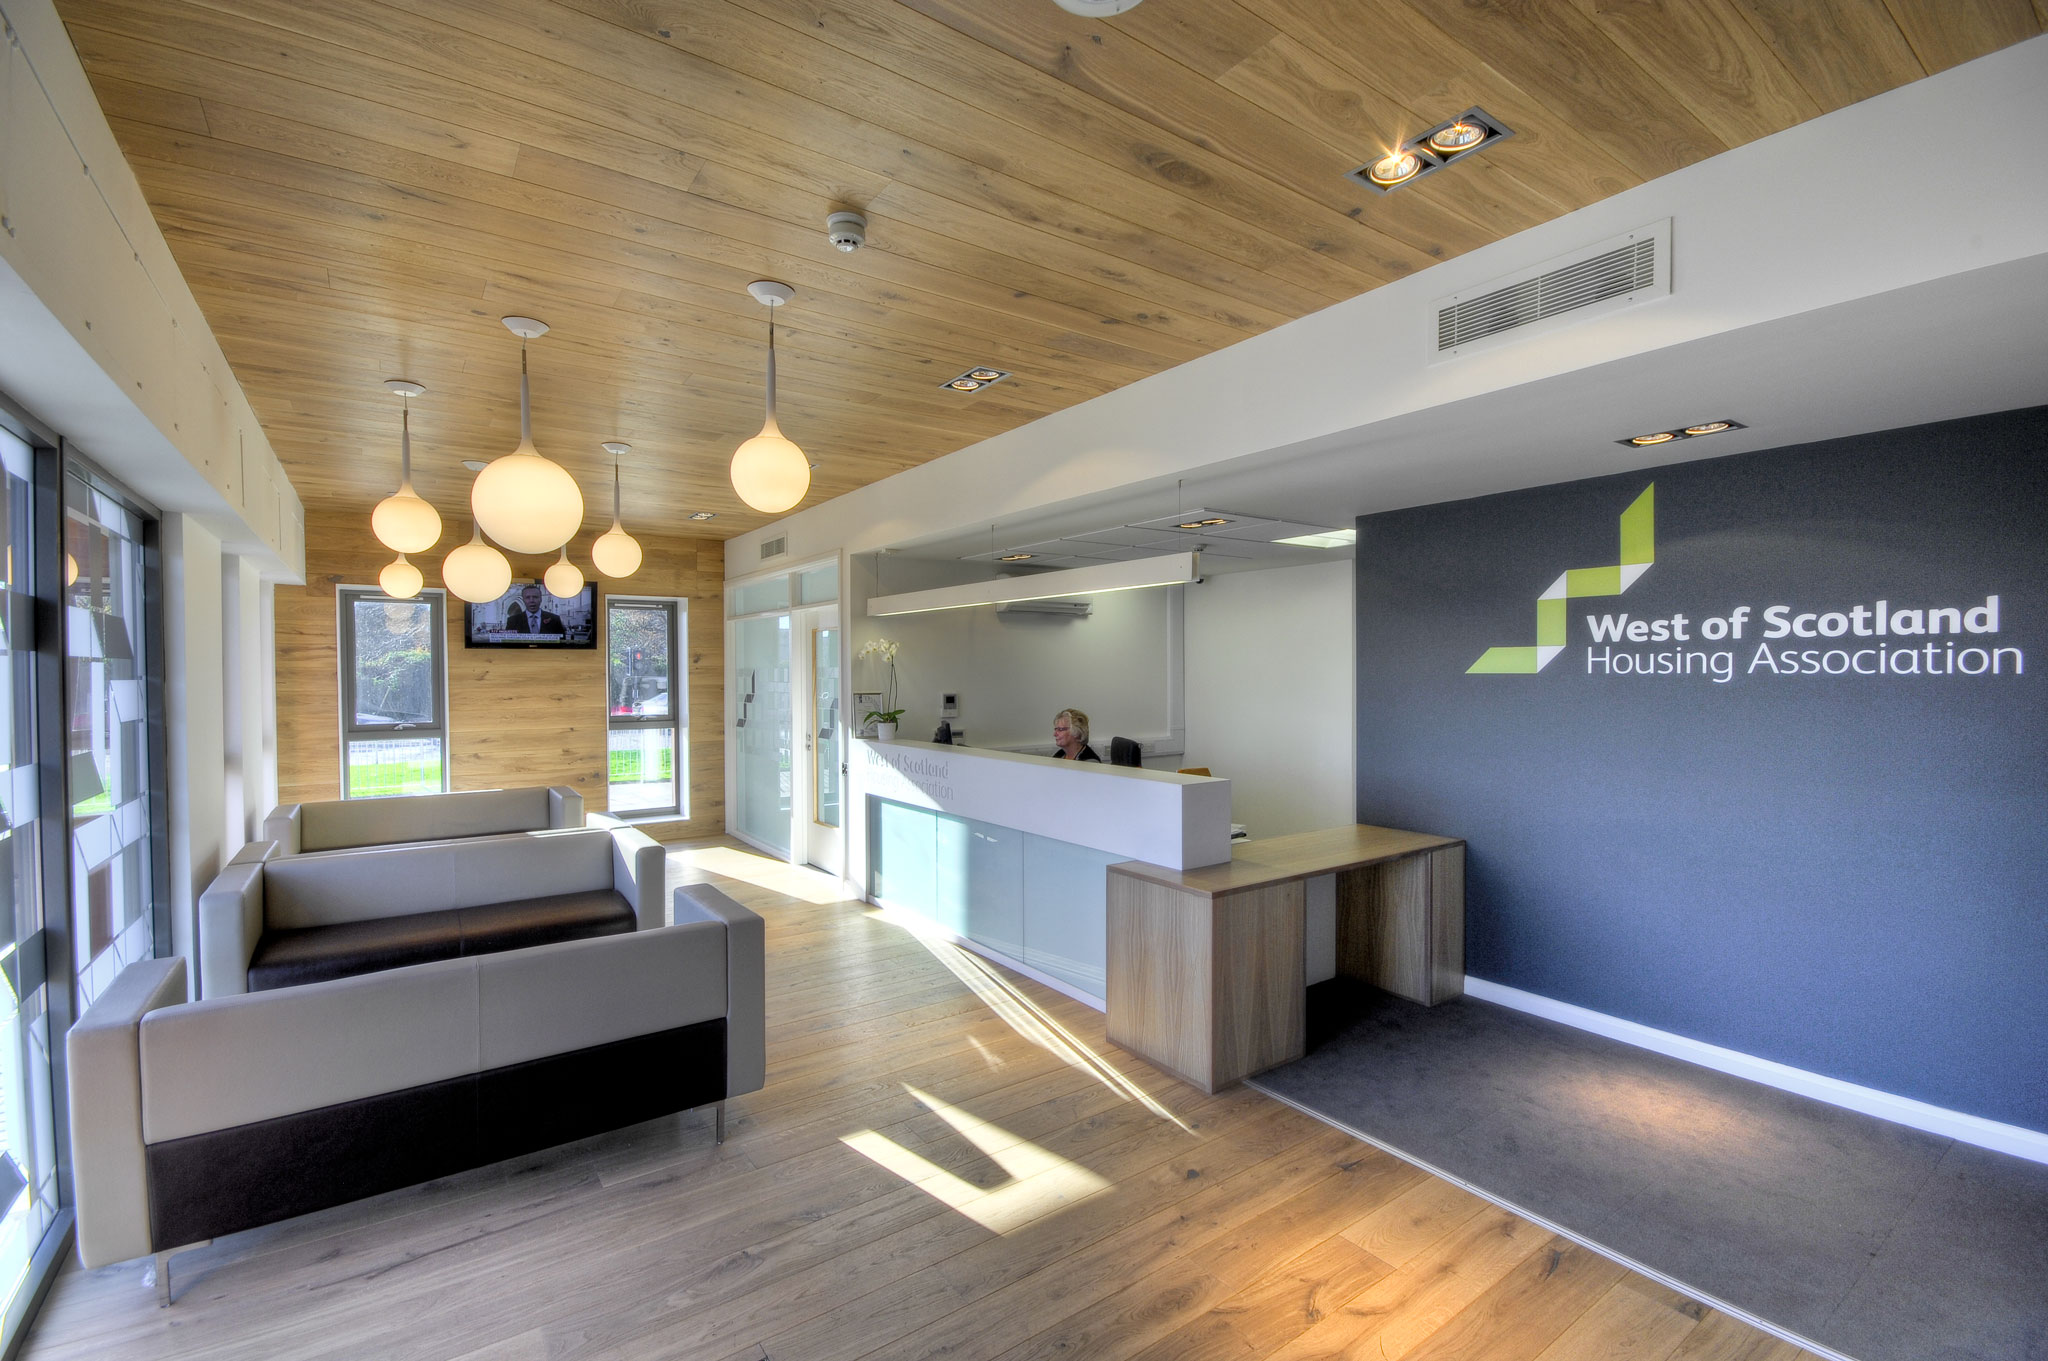 Graven Was Commissioned By West Of Scotland Housing Association To Design The Interior Their Offices And Redesign Visual Brand